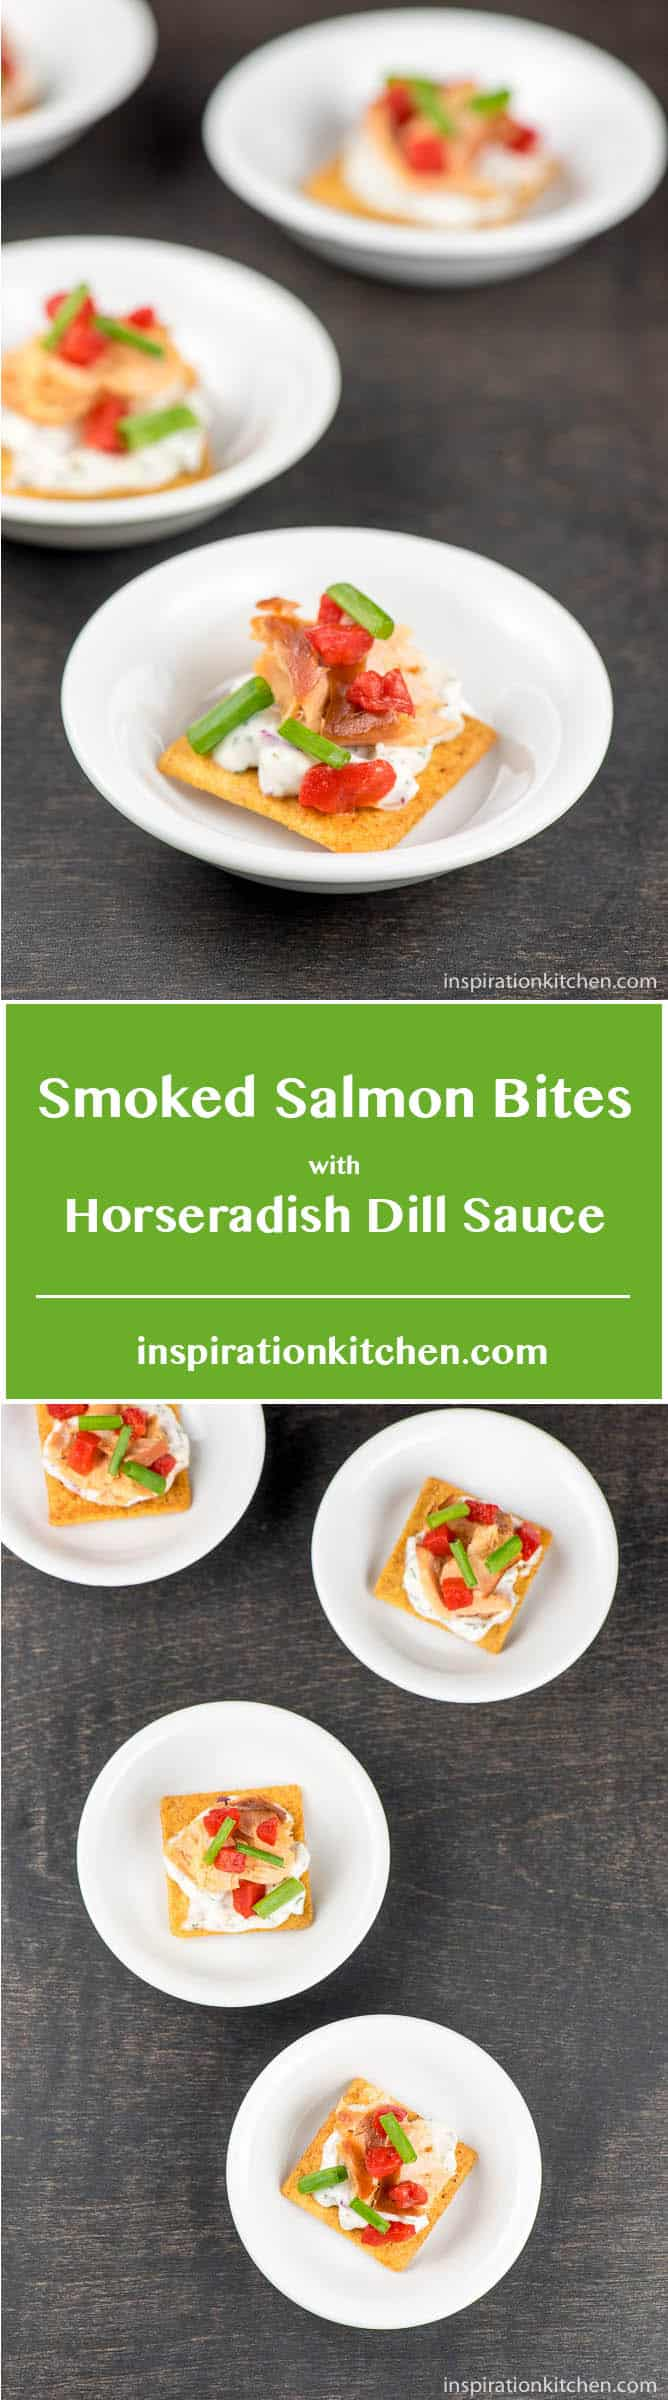 Smoked Salmon Bites with Horseradish Dill Sauce - inspirationkitchen.com